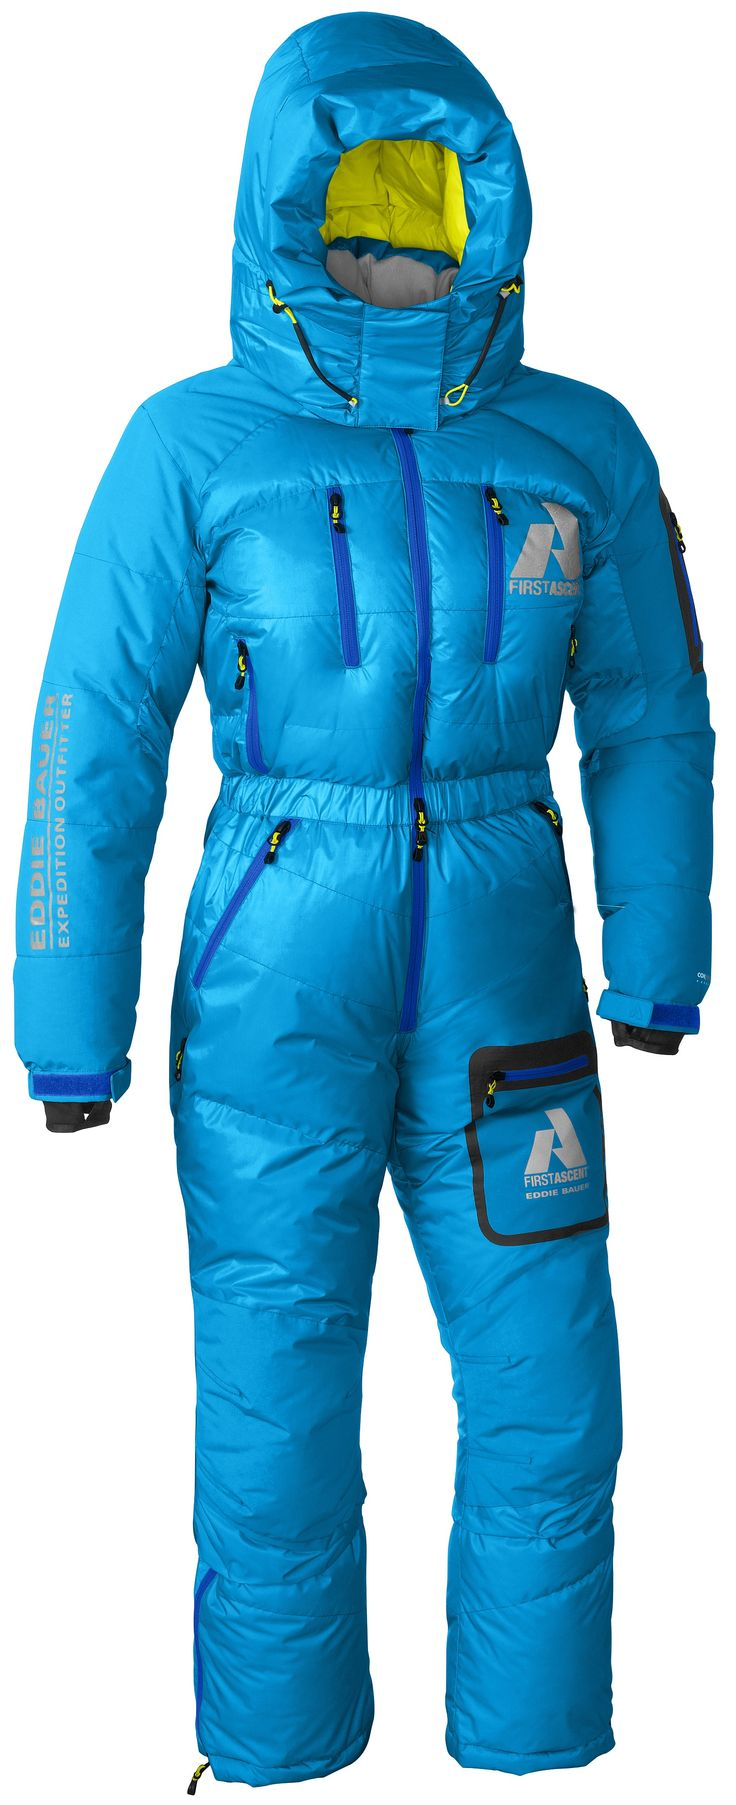 Peak XV® Down Suit | First Ascent